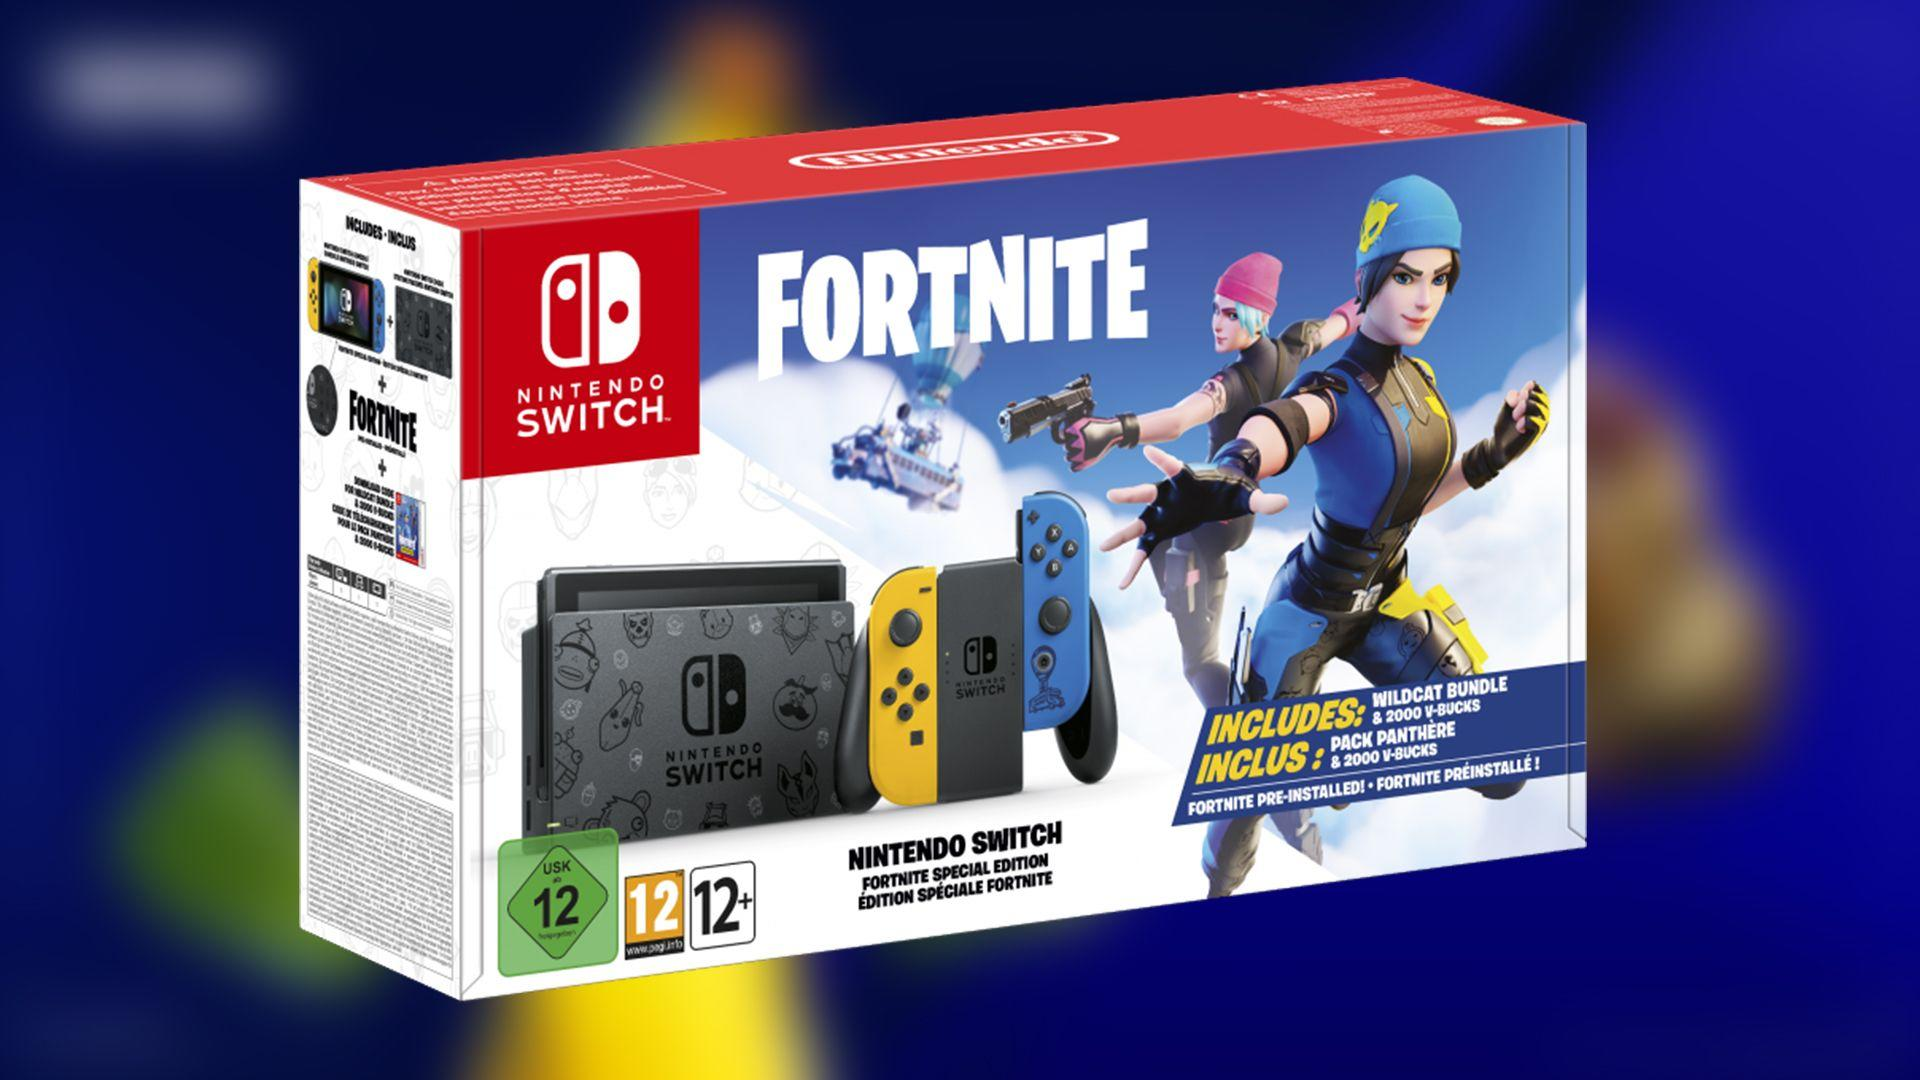 Get A Victory Royale With This Fortnite Themed Nintendo Switch